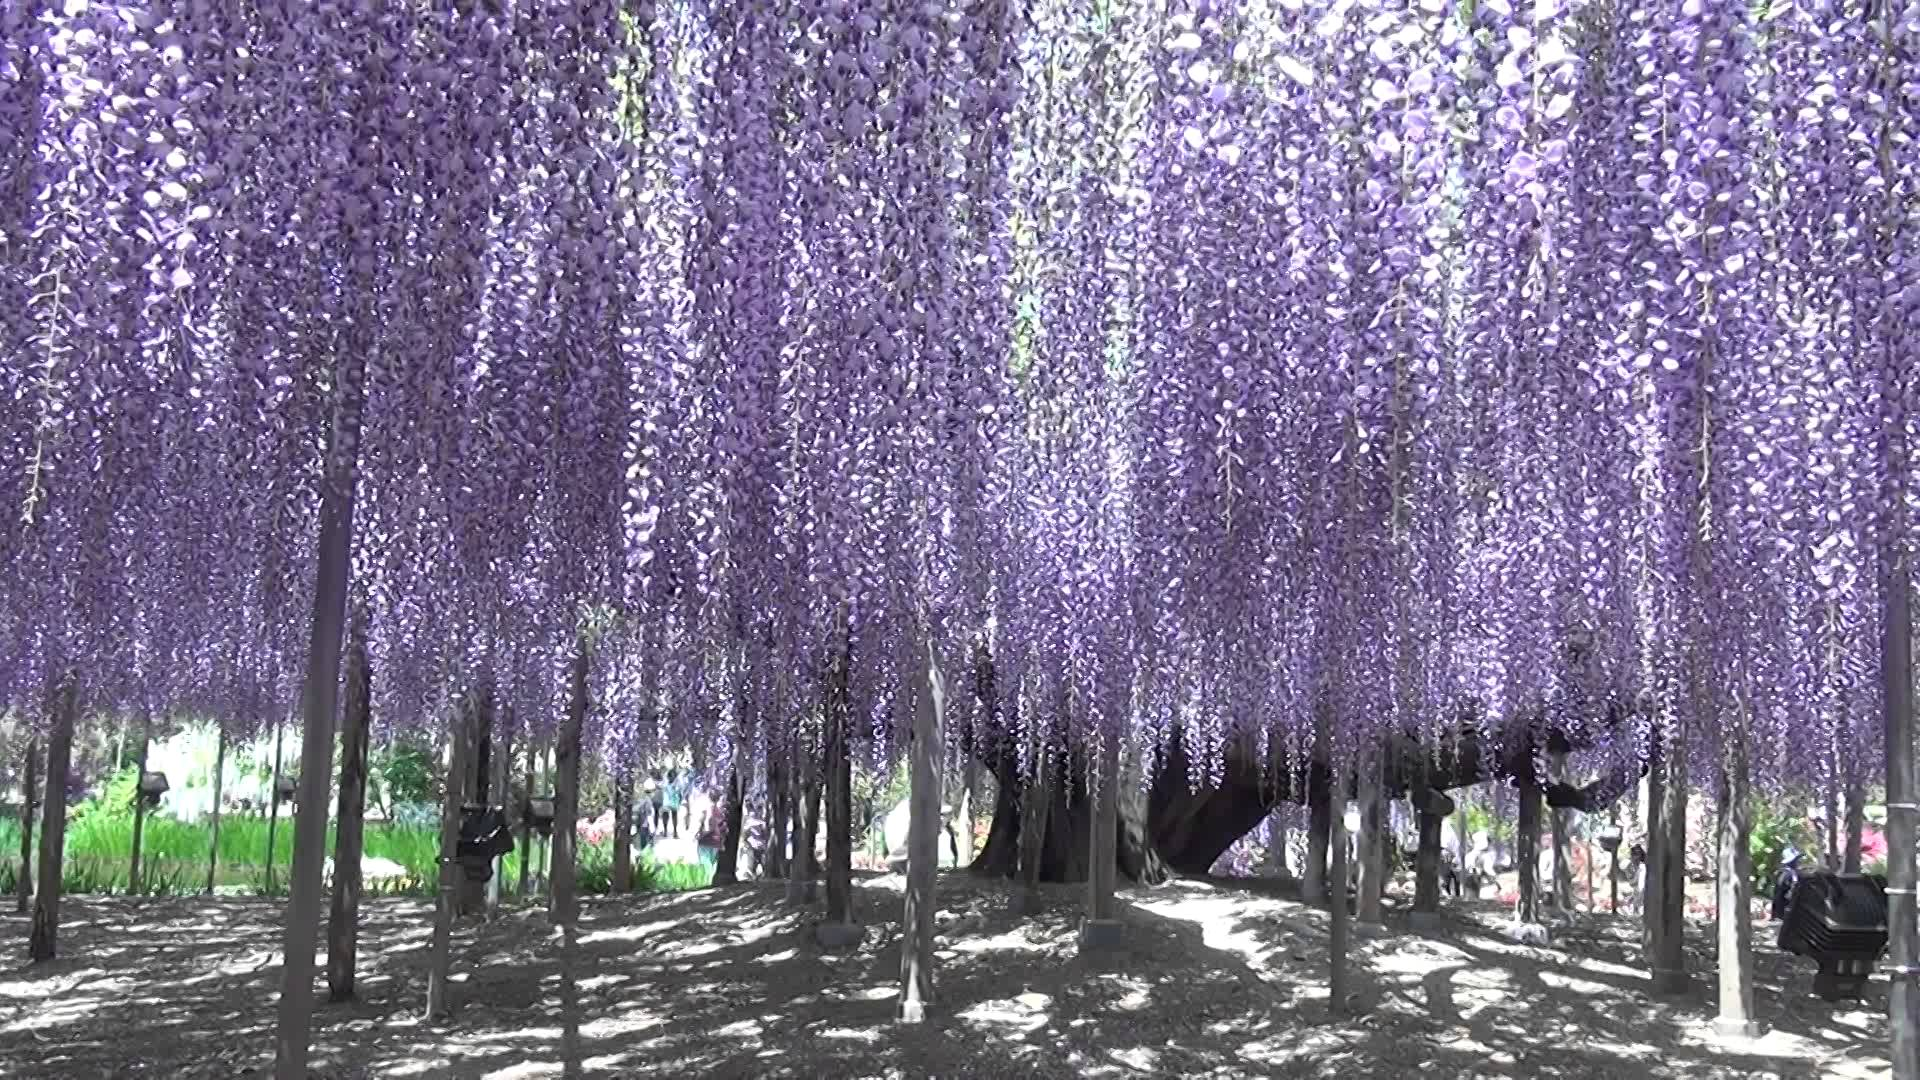 Wisteria Falls Wallpaper Huge Wisteria In Japan Wallpapers High Quality Download Free